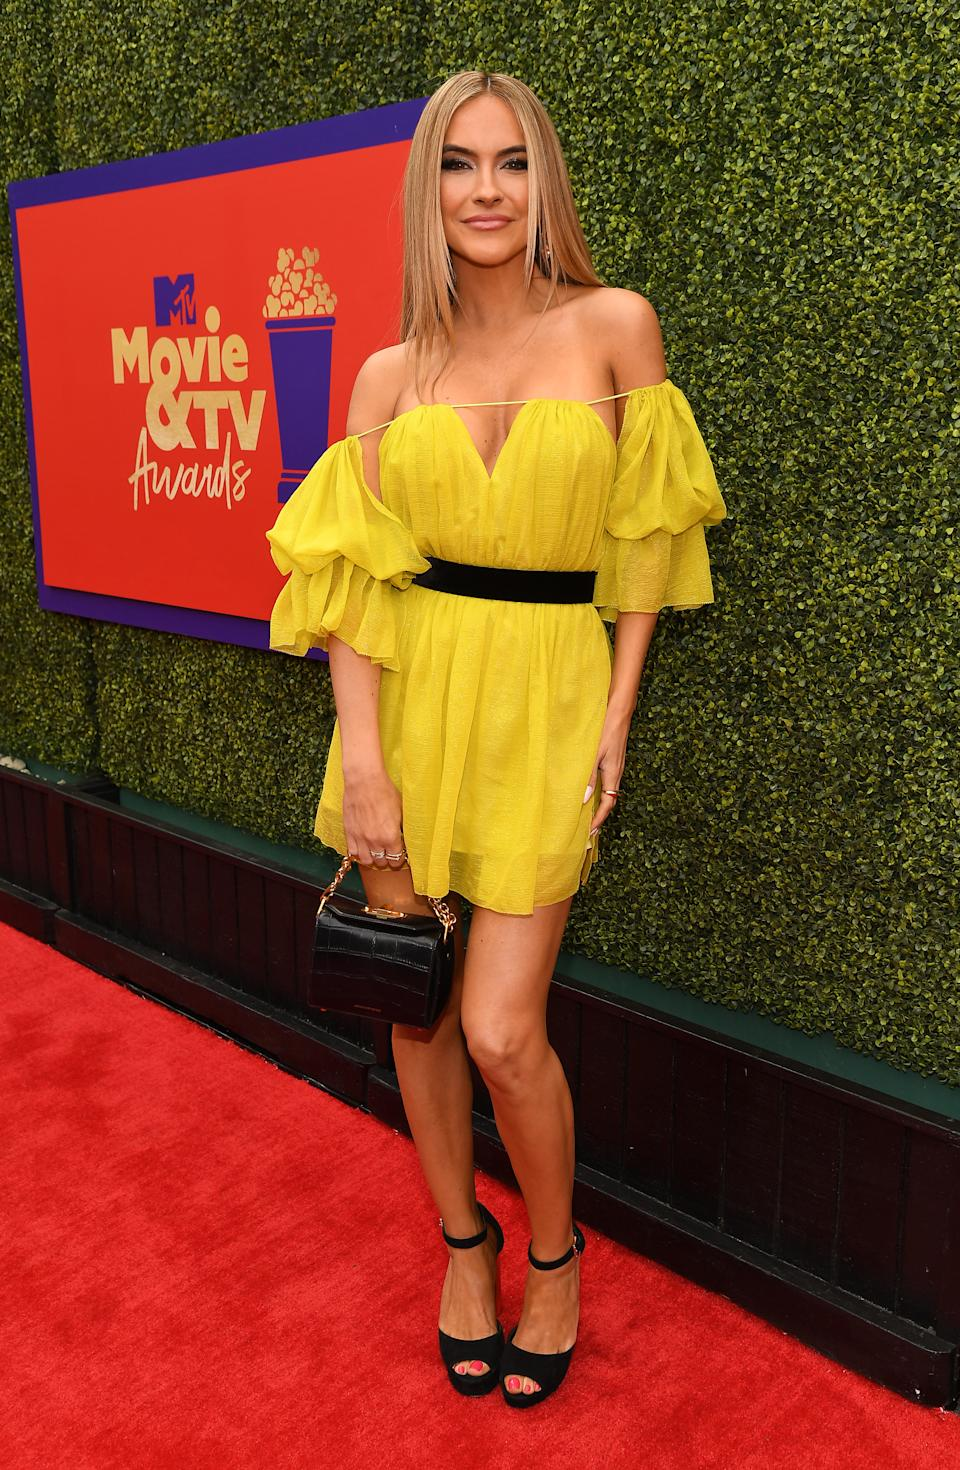 LOS ANGELES, CALIFORNIA - MAY 17: In this image released on May 17, Chrishell Stause attends the 2021 MTV Movie & TV Awards: UNSCRIPTED in Los Angeles, California. (Photo by Kevin Mazur/2021 MTV Movie and TV Awards/Getty Images for MTV/ViacomCBS)